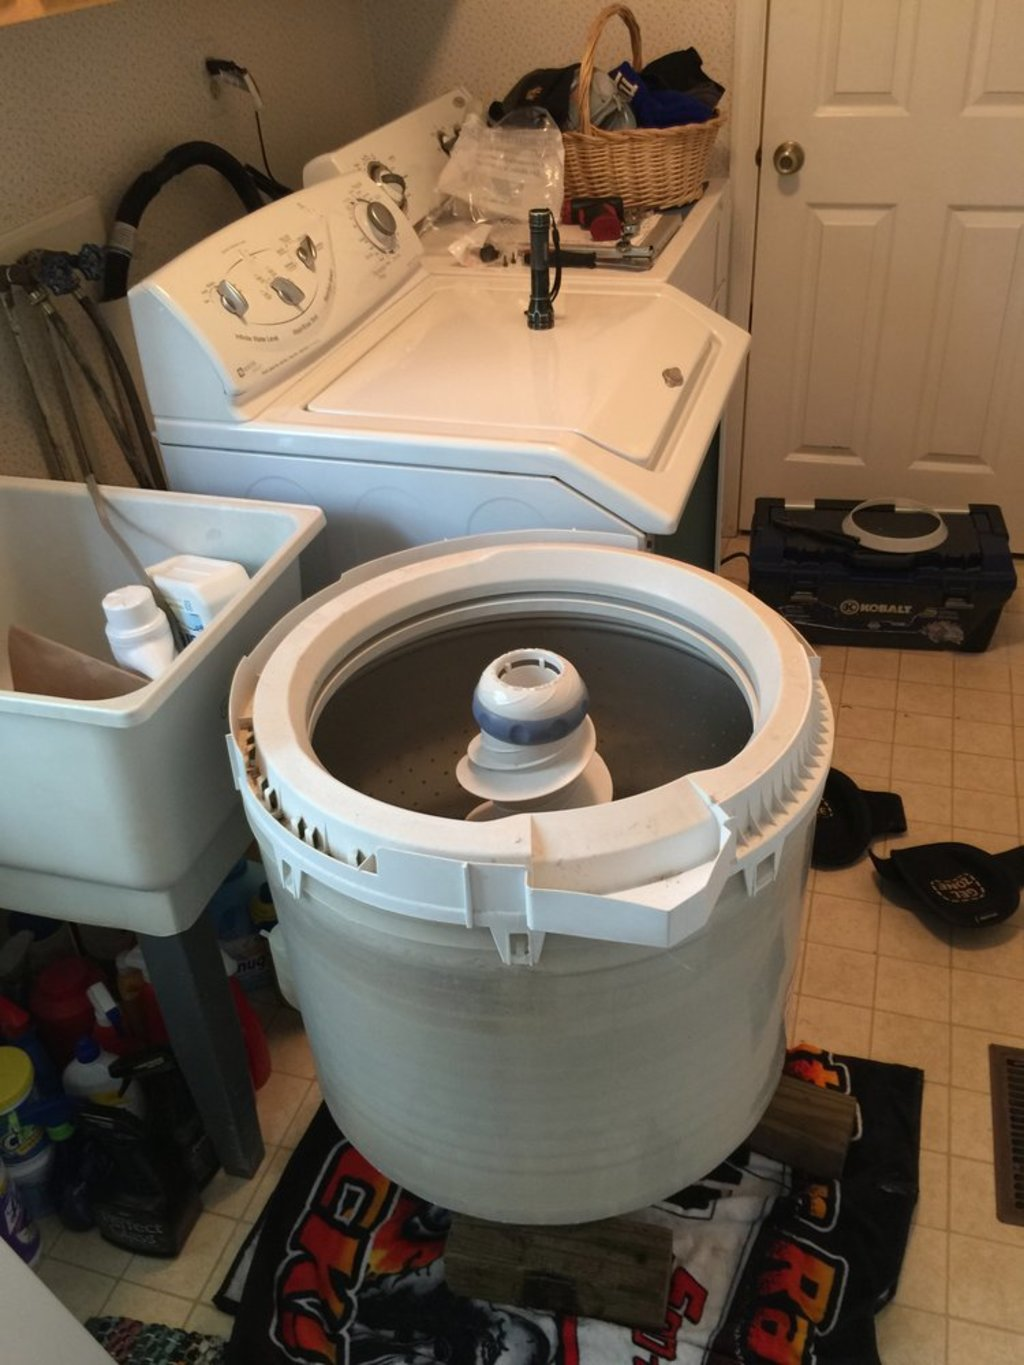 Northeast Appliance Service, LLC - Fixing a Washer and Dryer